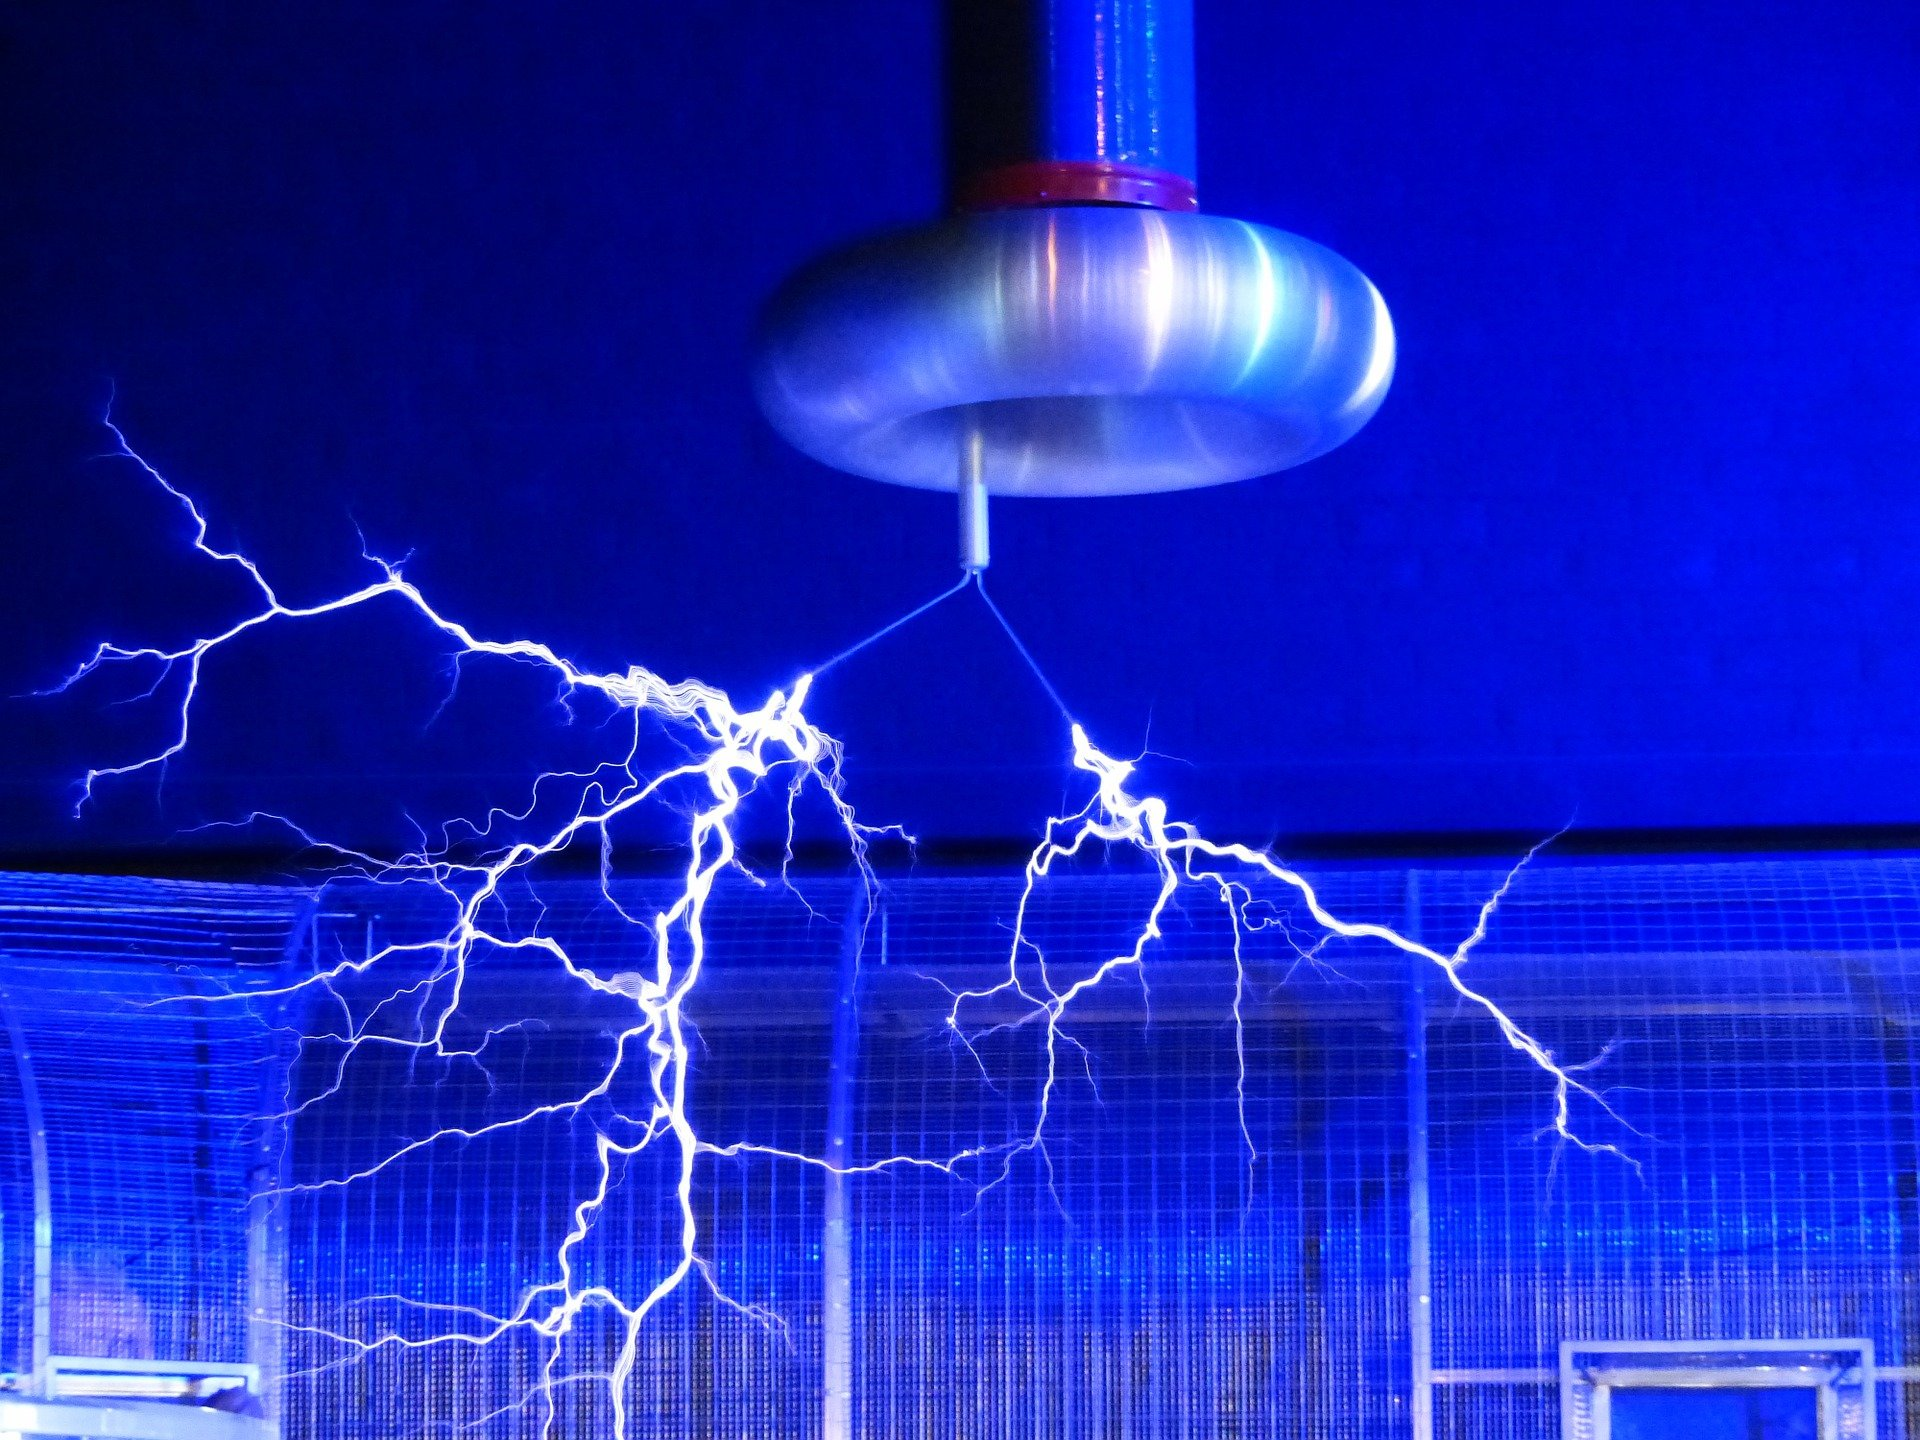 Elemental Gases in Front of a Tesla Coil